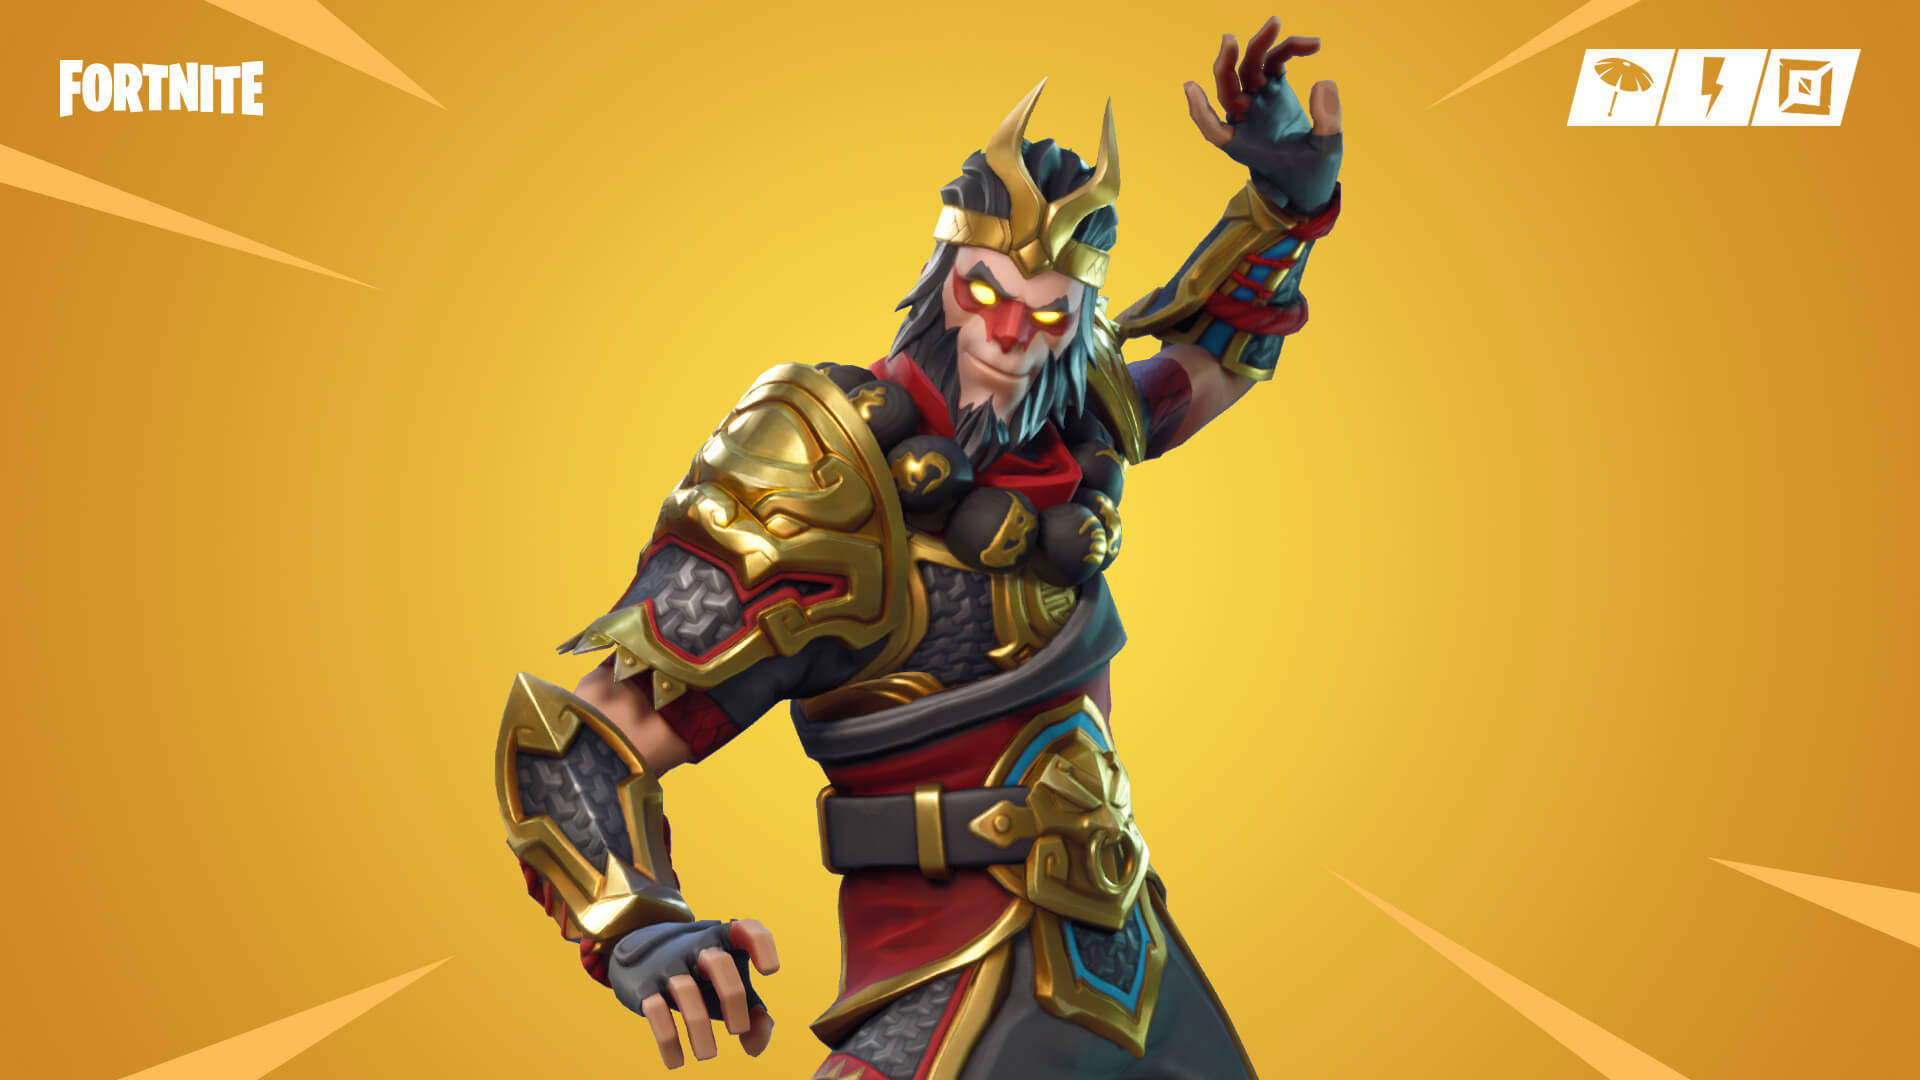 Fortnite_blog_save-the-world-homebase-status-report-1-21-20_StW07_Social_Wukong-1920x1080-54c9...jpg